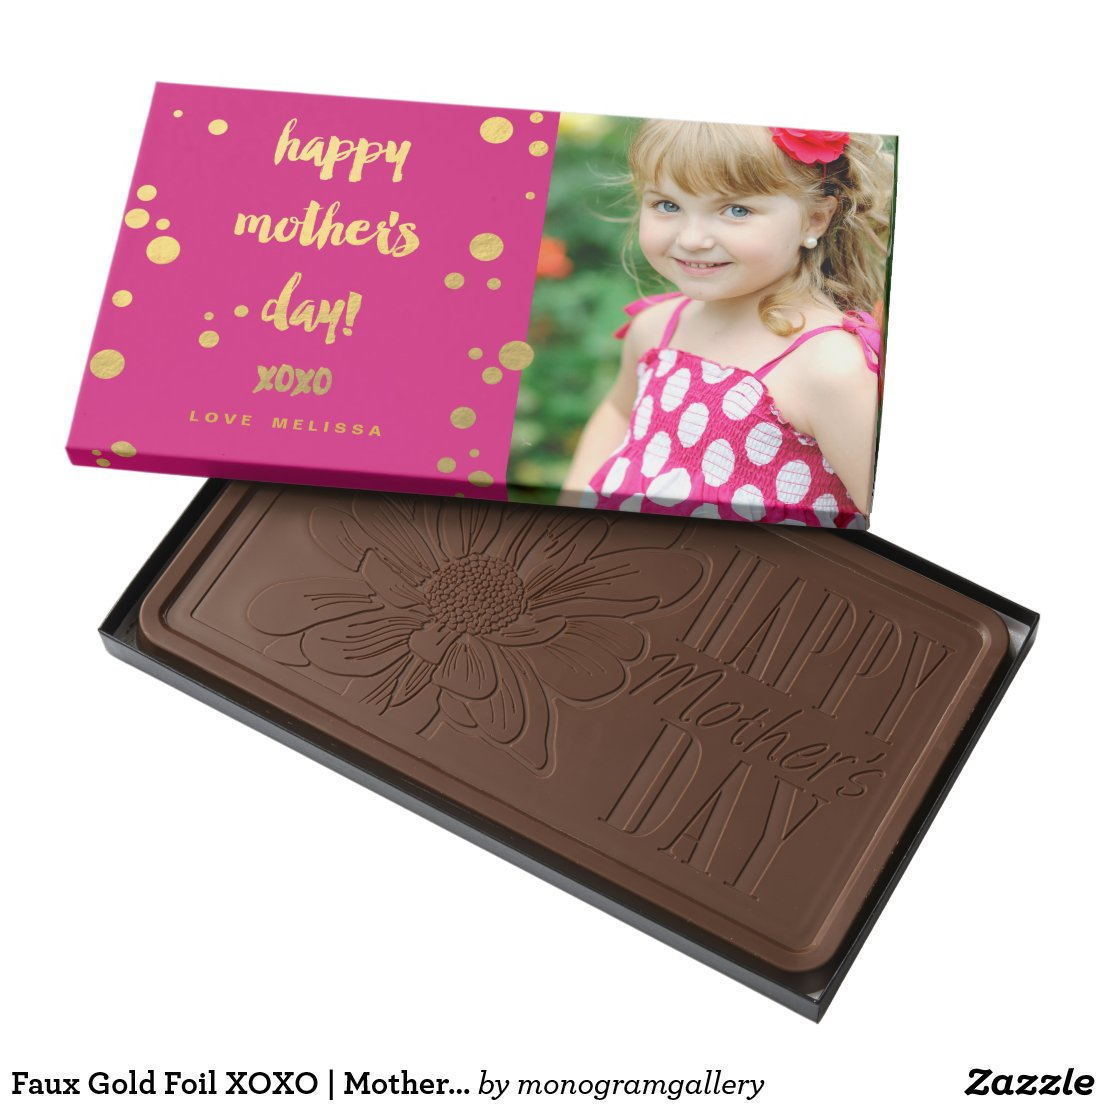 Faux Gold Foil XOXO | Mother's Day Chocolate